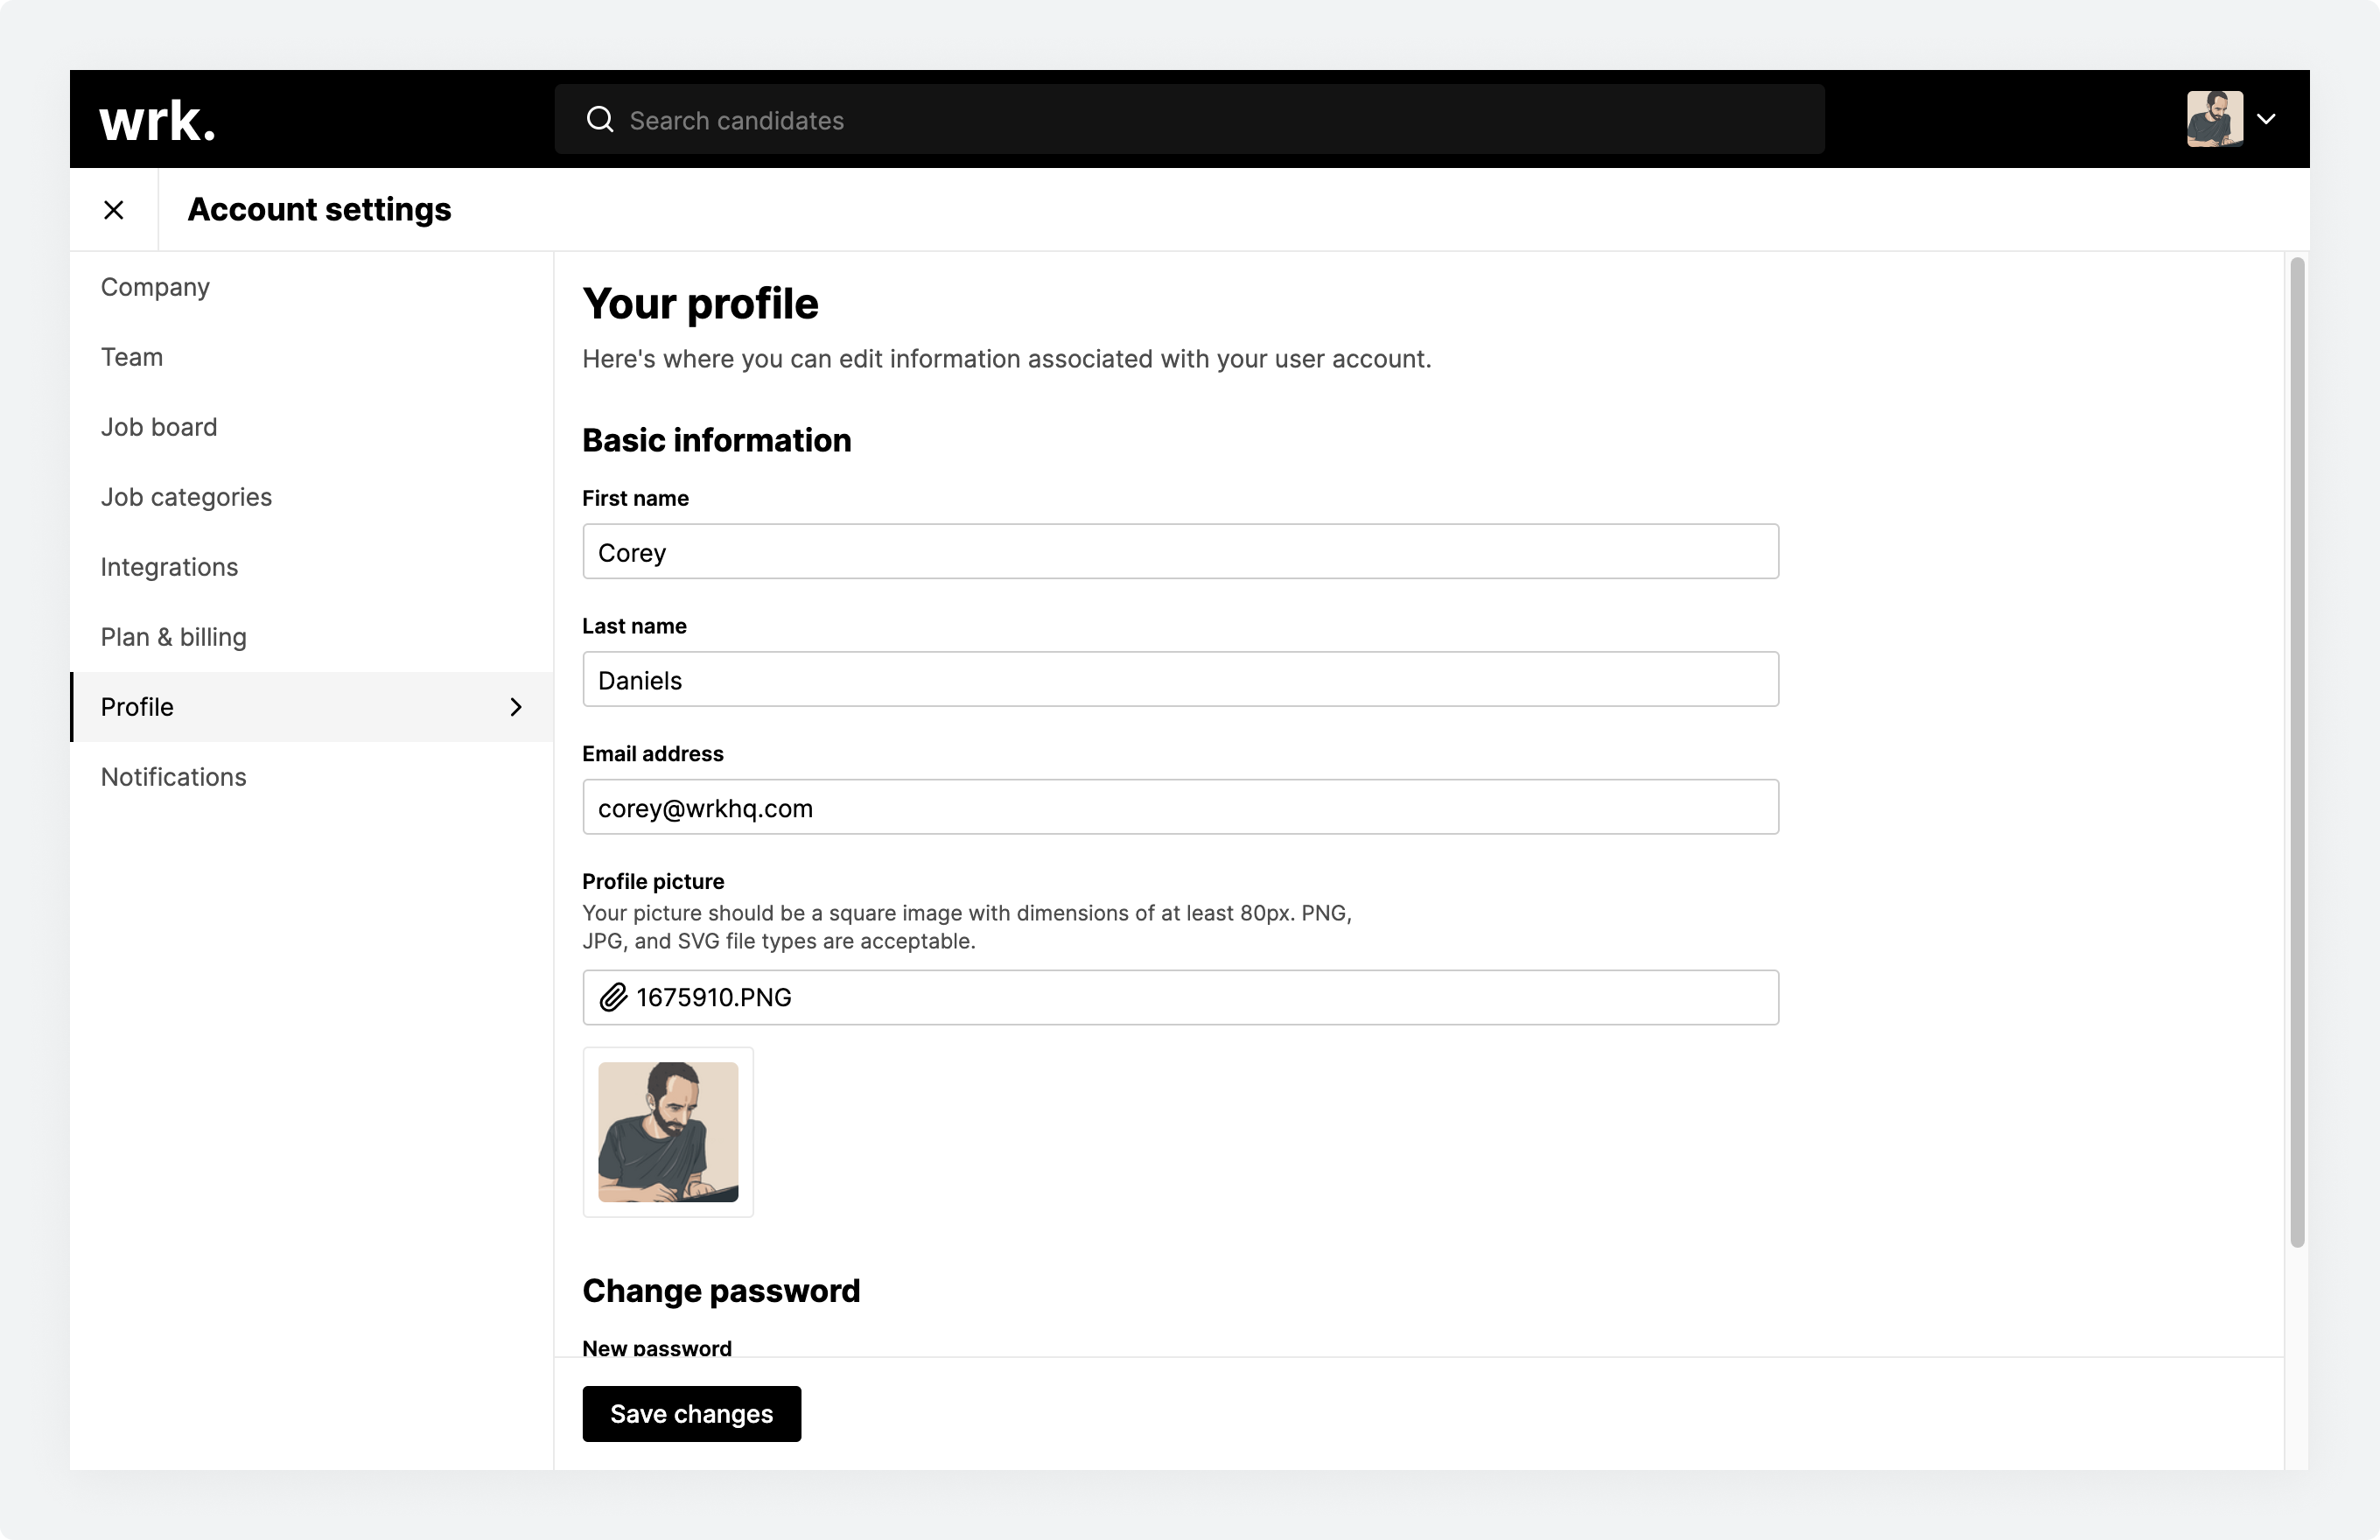 The Your profile screen in Wrk